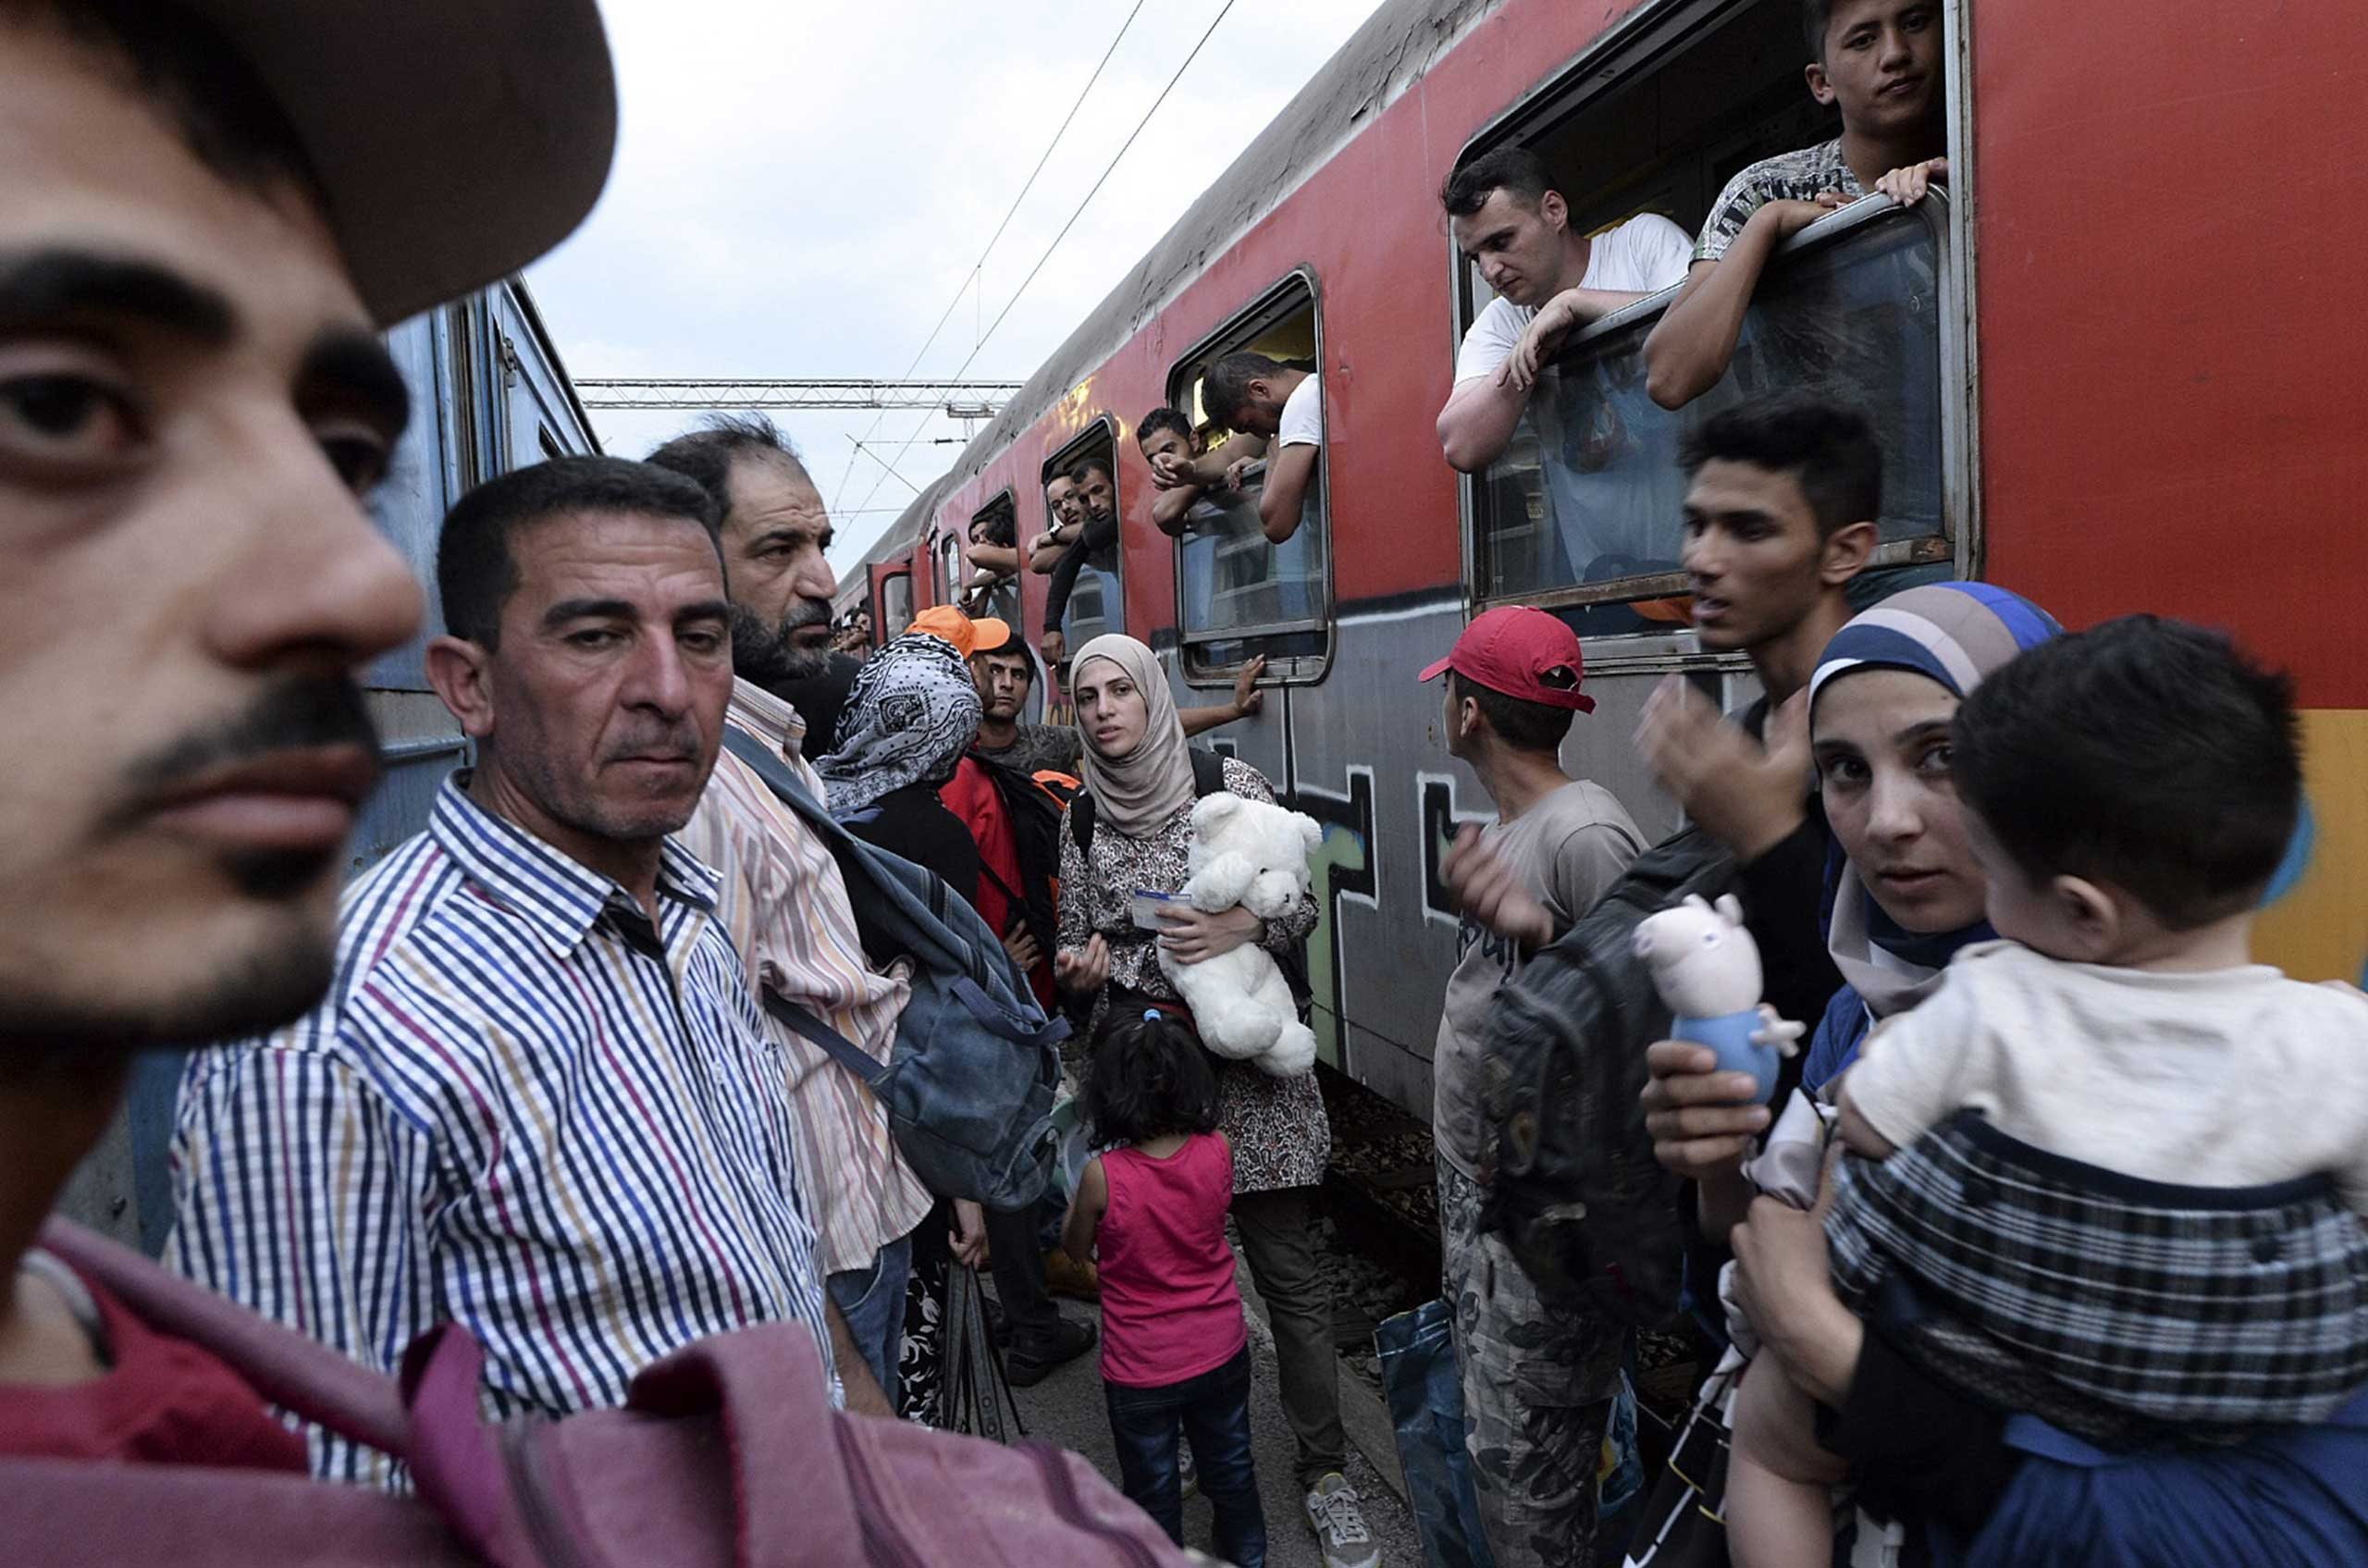 Migrants react after they couldn't find a seat on the train heading to the Serbian border, where they will migrate towards Western European nations, at the train station in Gevgelija, Macedonia, July 26, 2015.